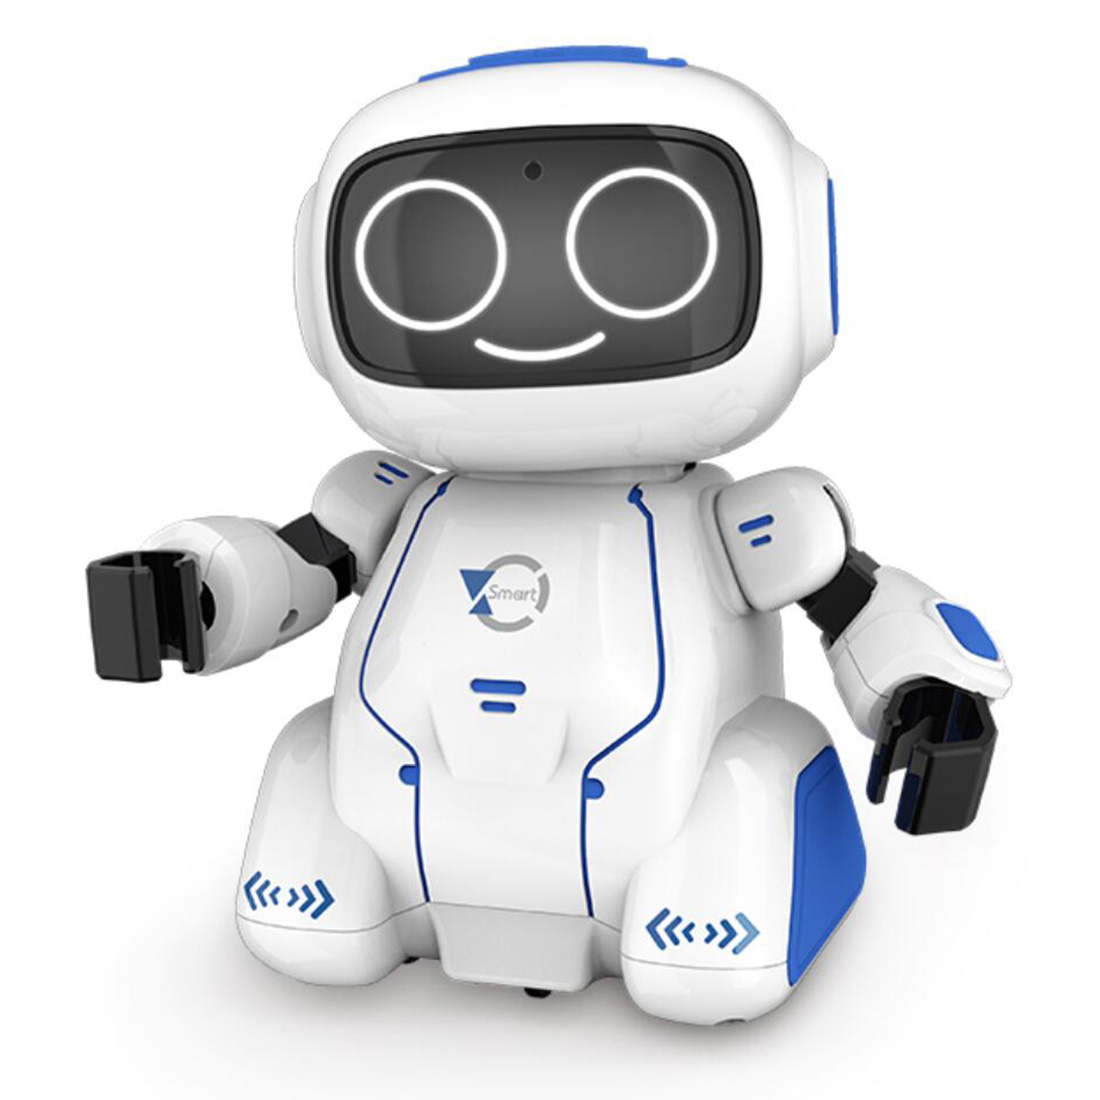 Kids Intelligent Interactive Education Smart Singing Dancing Robot With Voice Recognition Story Told Function  Gift For Boys